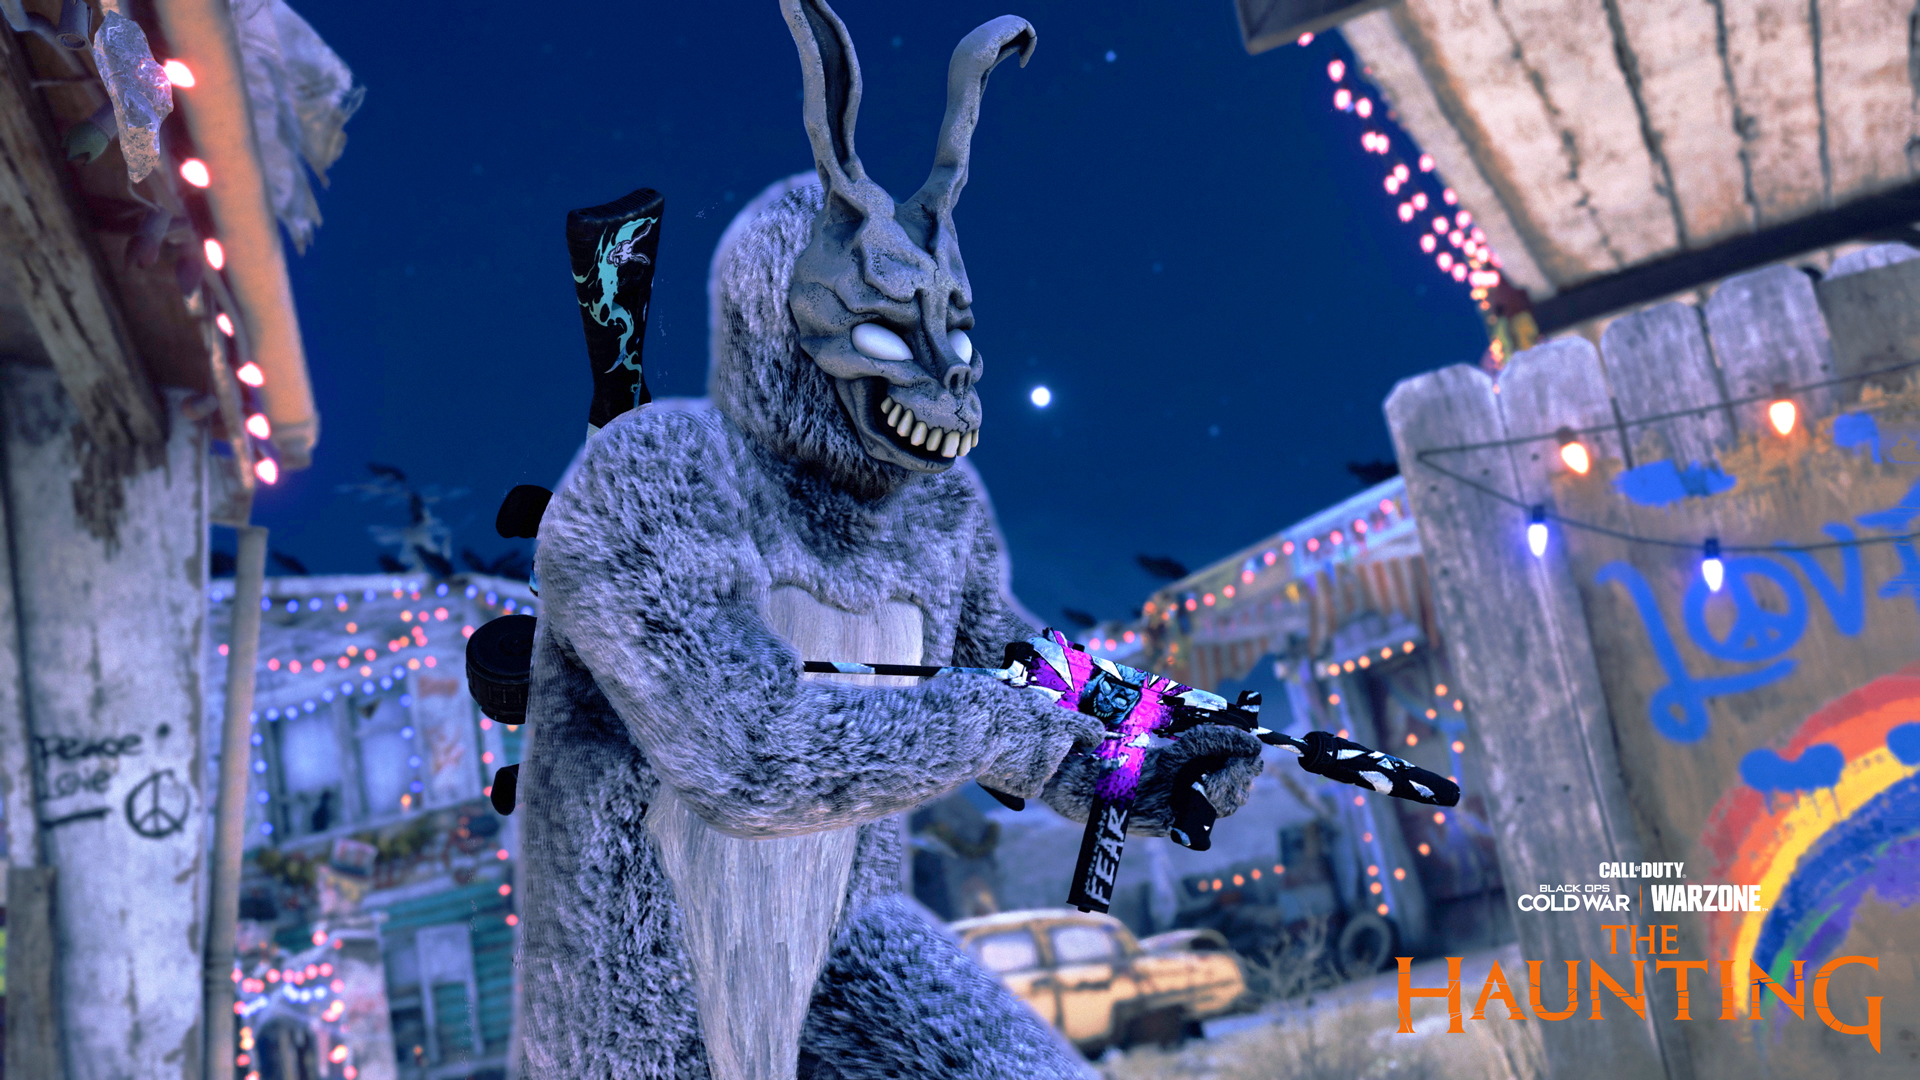 Frank the Rabbit runs with a colorful gun in a screenshot from Call of Duty's The Haunting event